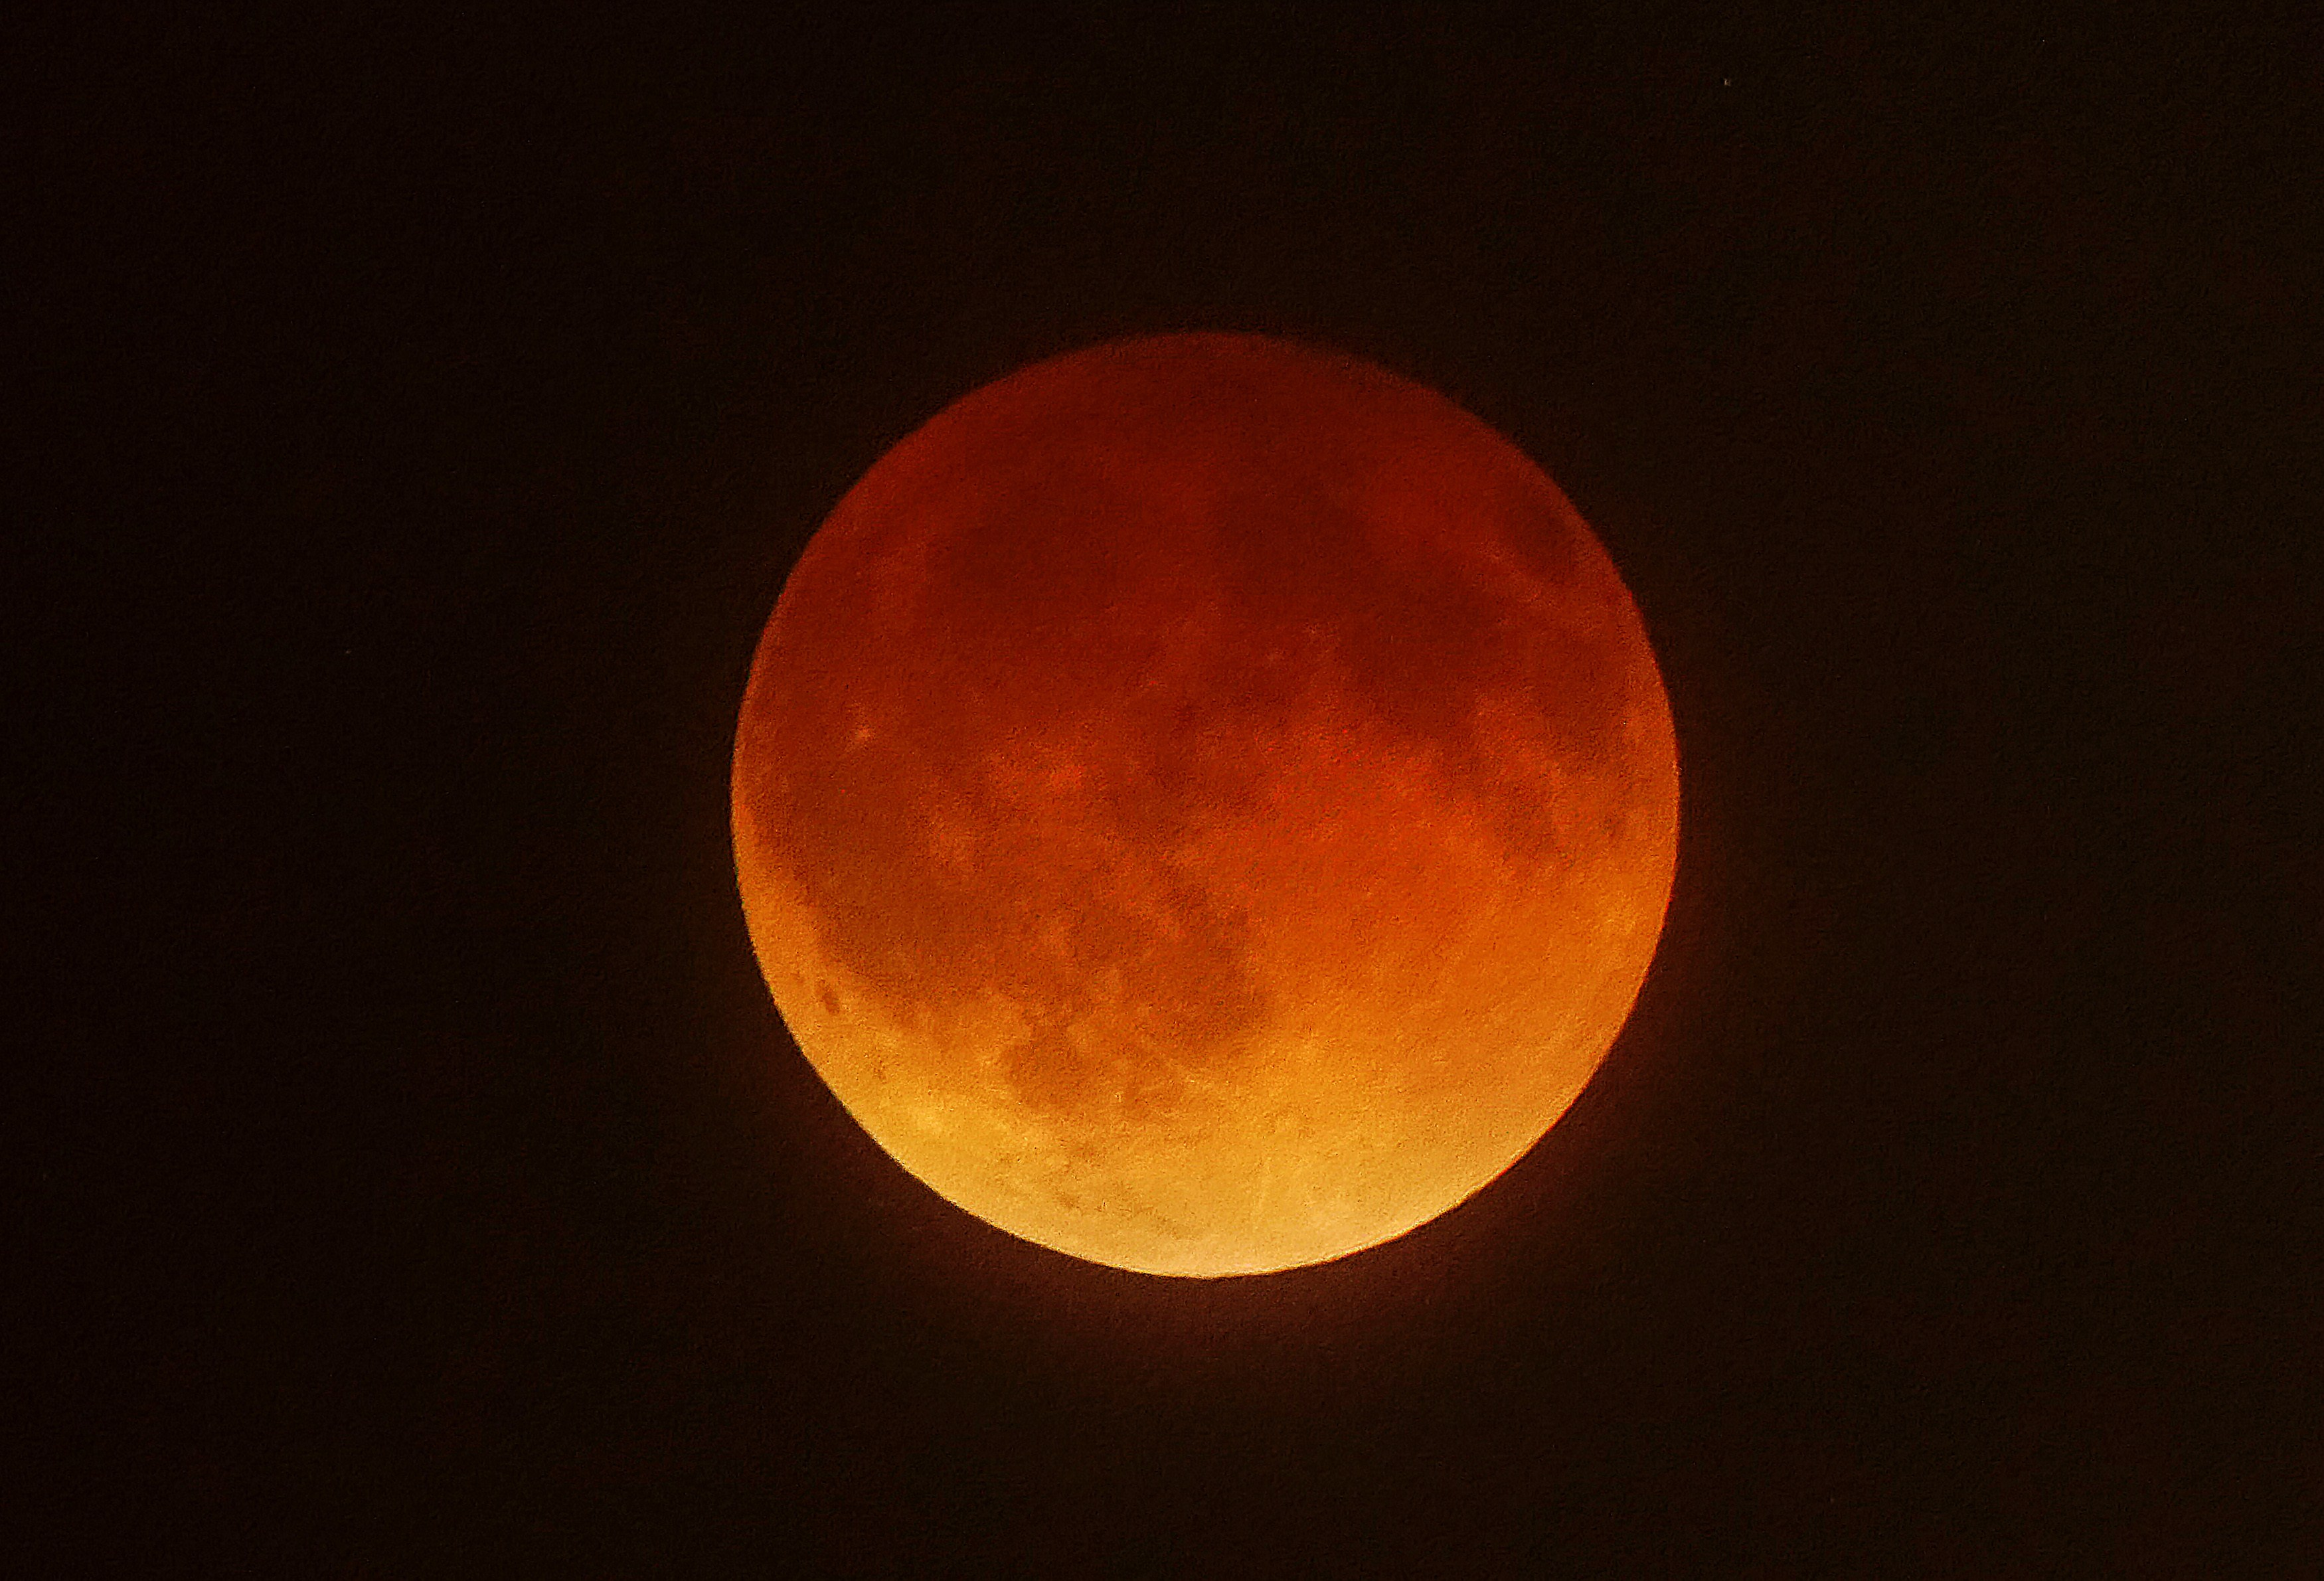 Wake up early Wednesday morning to see a total eclipse of the moon